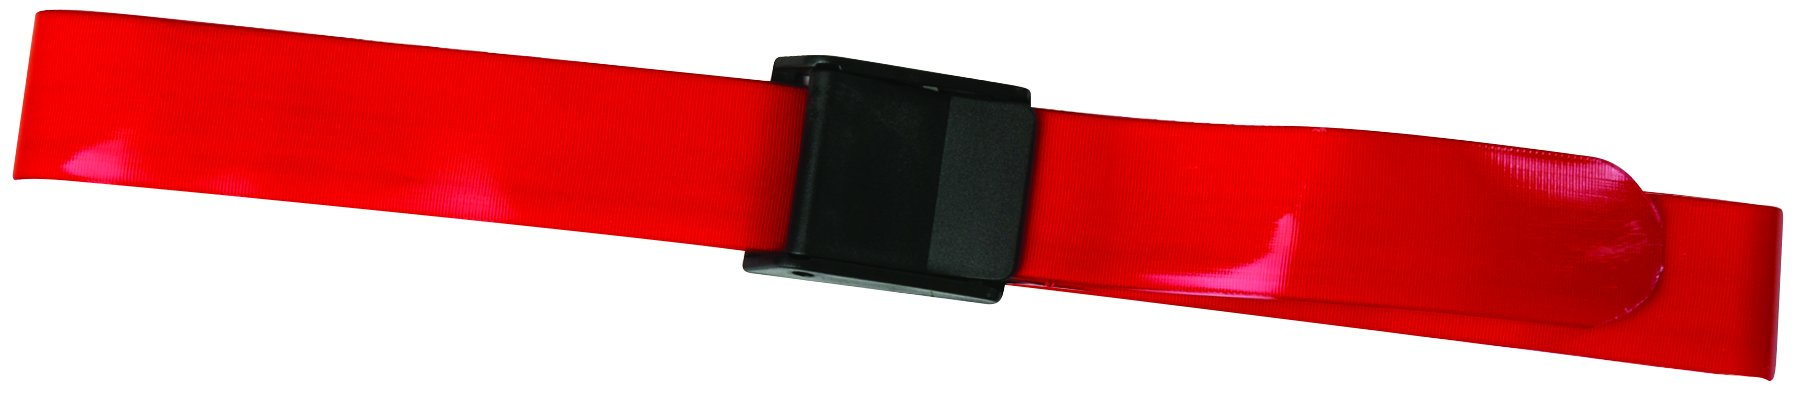 Secure SPGB-60R Quick Clean Antimicrobial Transfer Gait Belt, Red, 60'' x 2'' - Patient Safety Aid for Caregiver, Nurse, Therapist by Secure